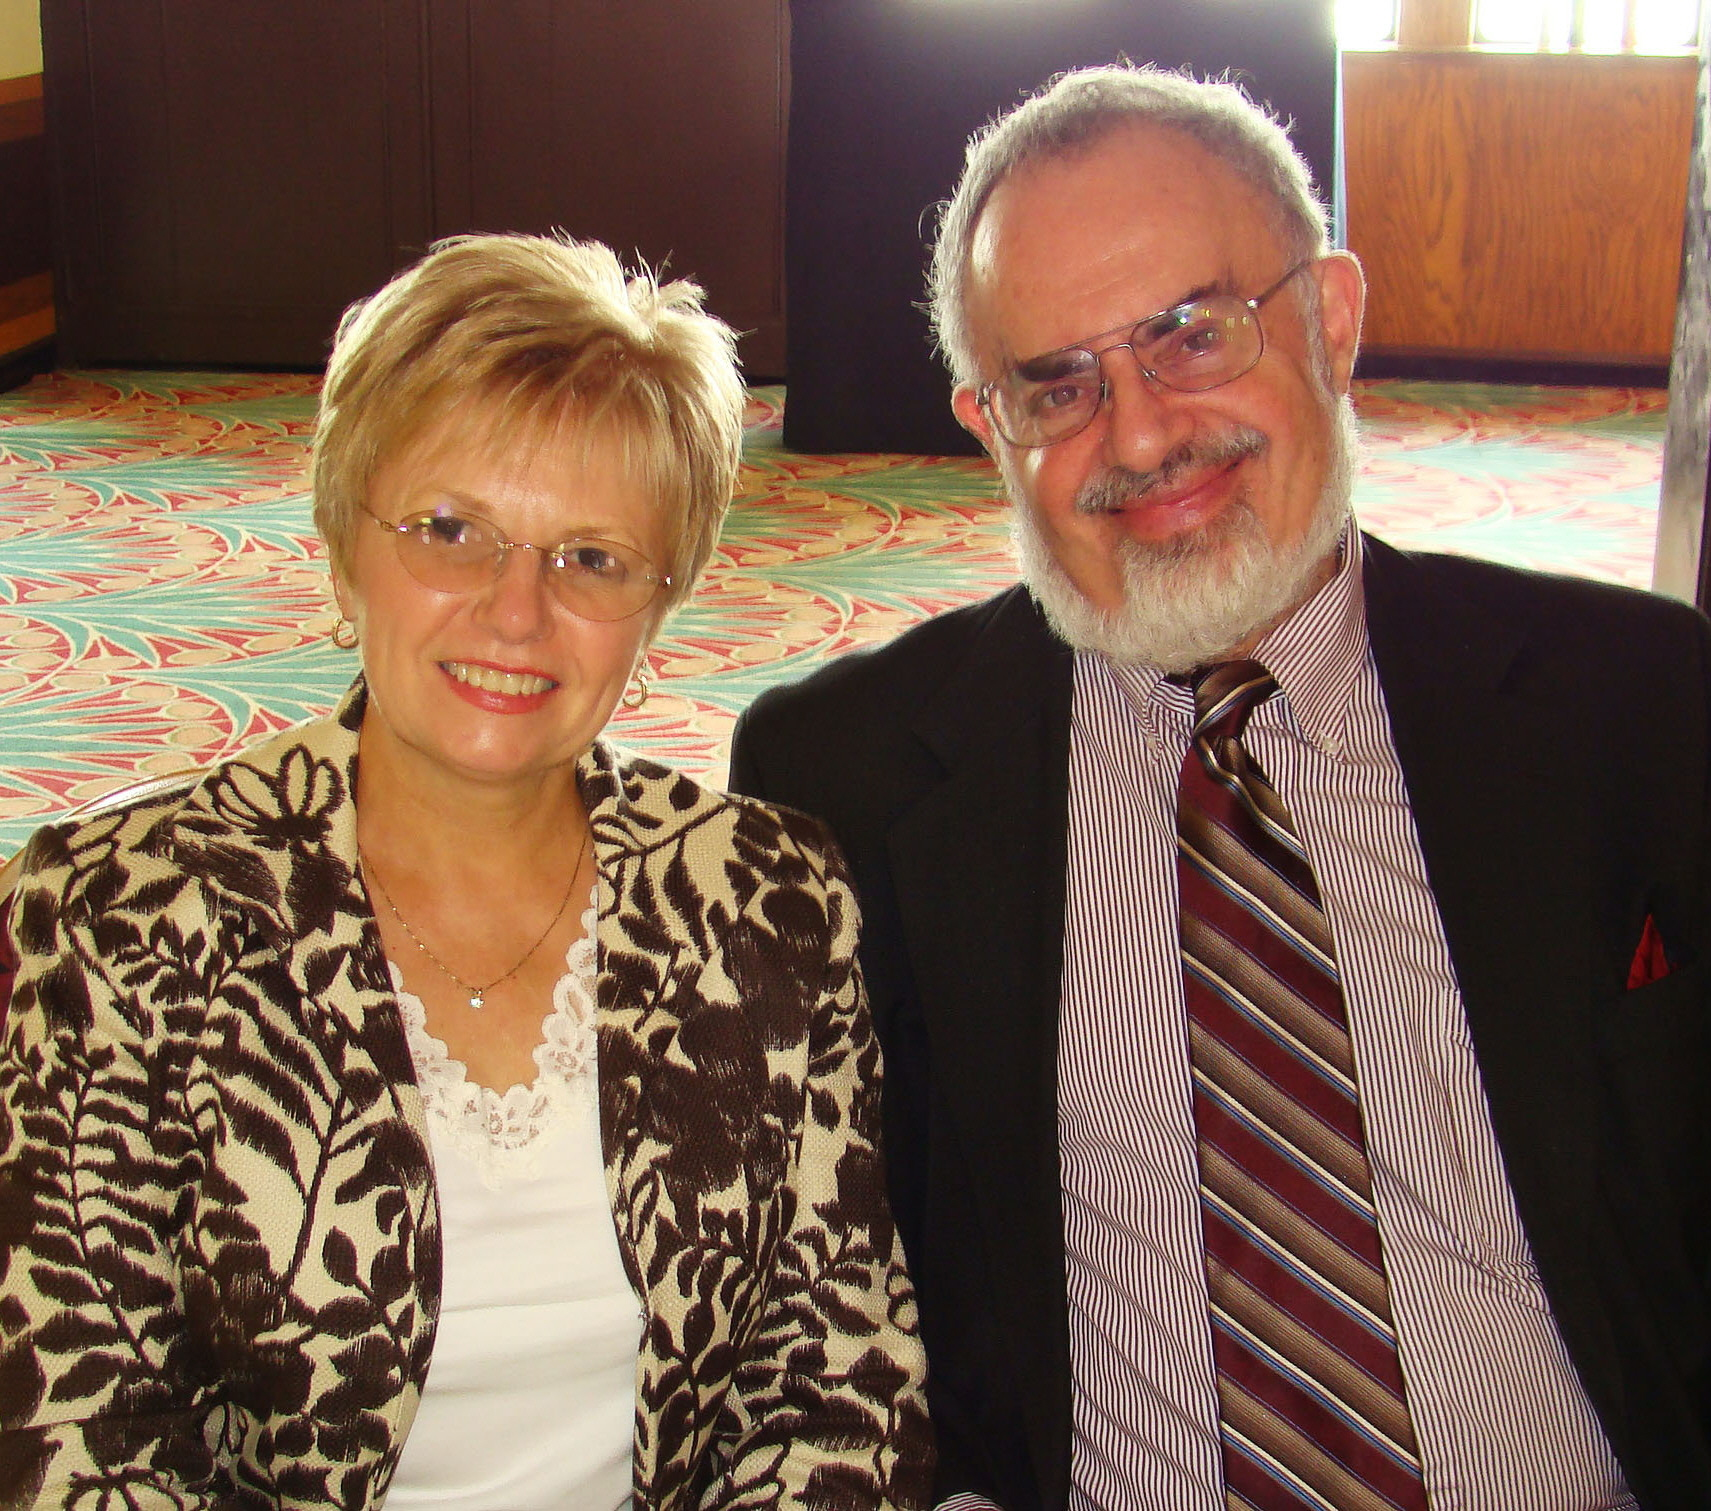 Kathleen Marden and Stanton Friedman